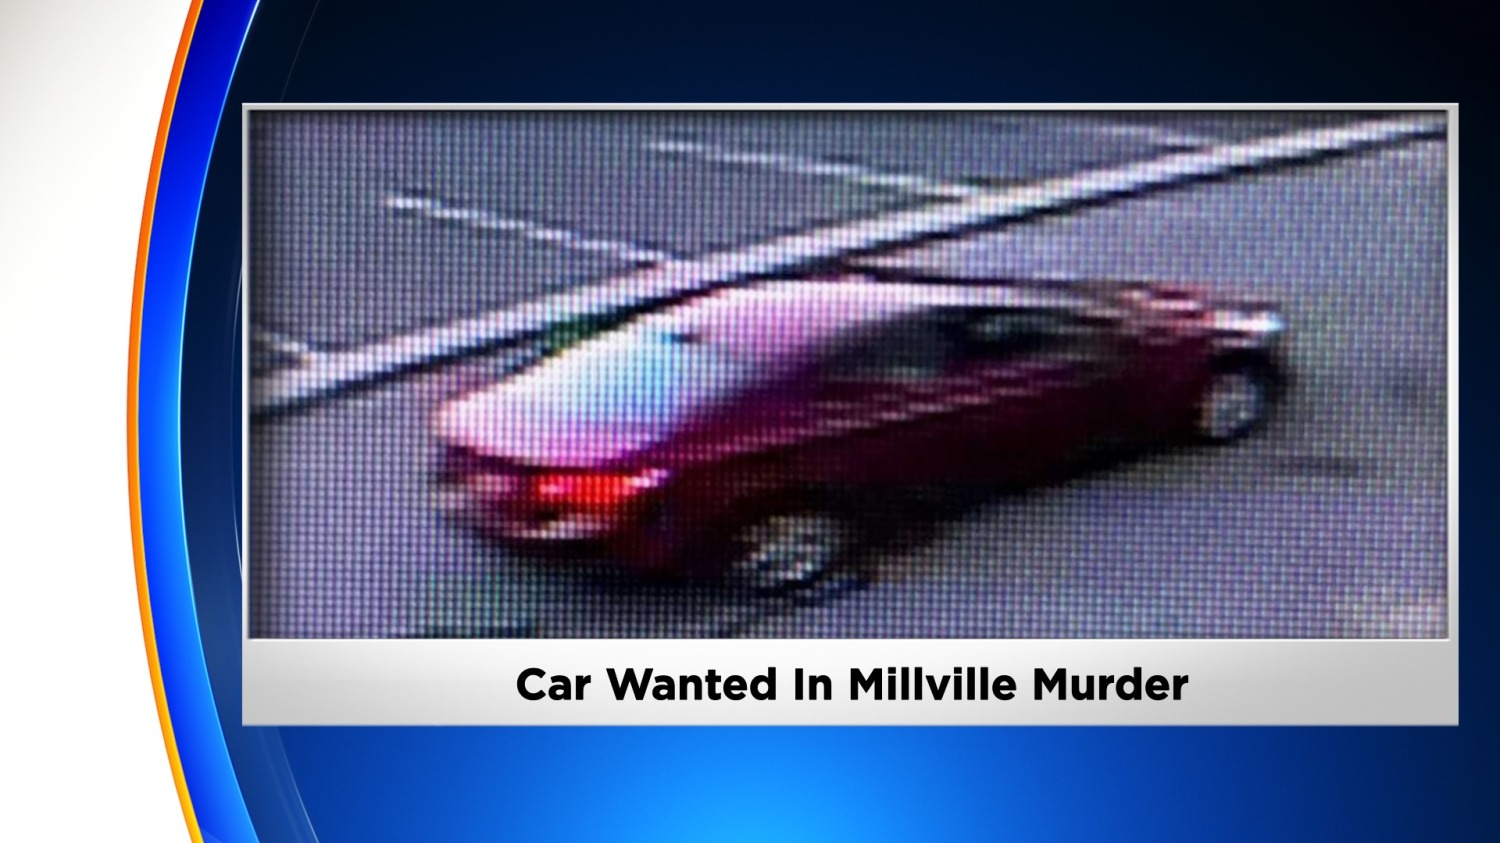 Officials Release Image Of Car Sought In Millville Youth